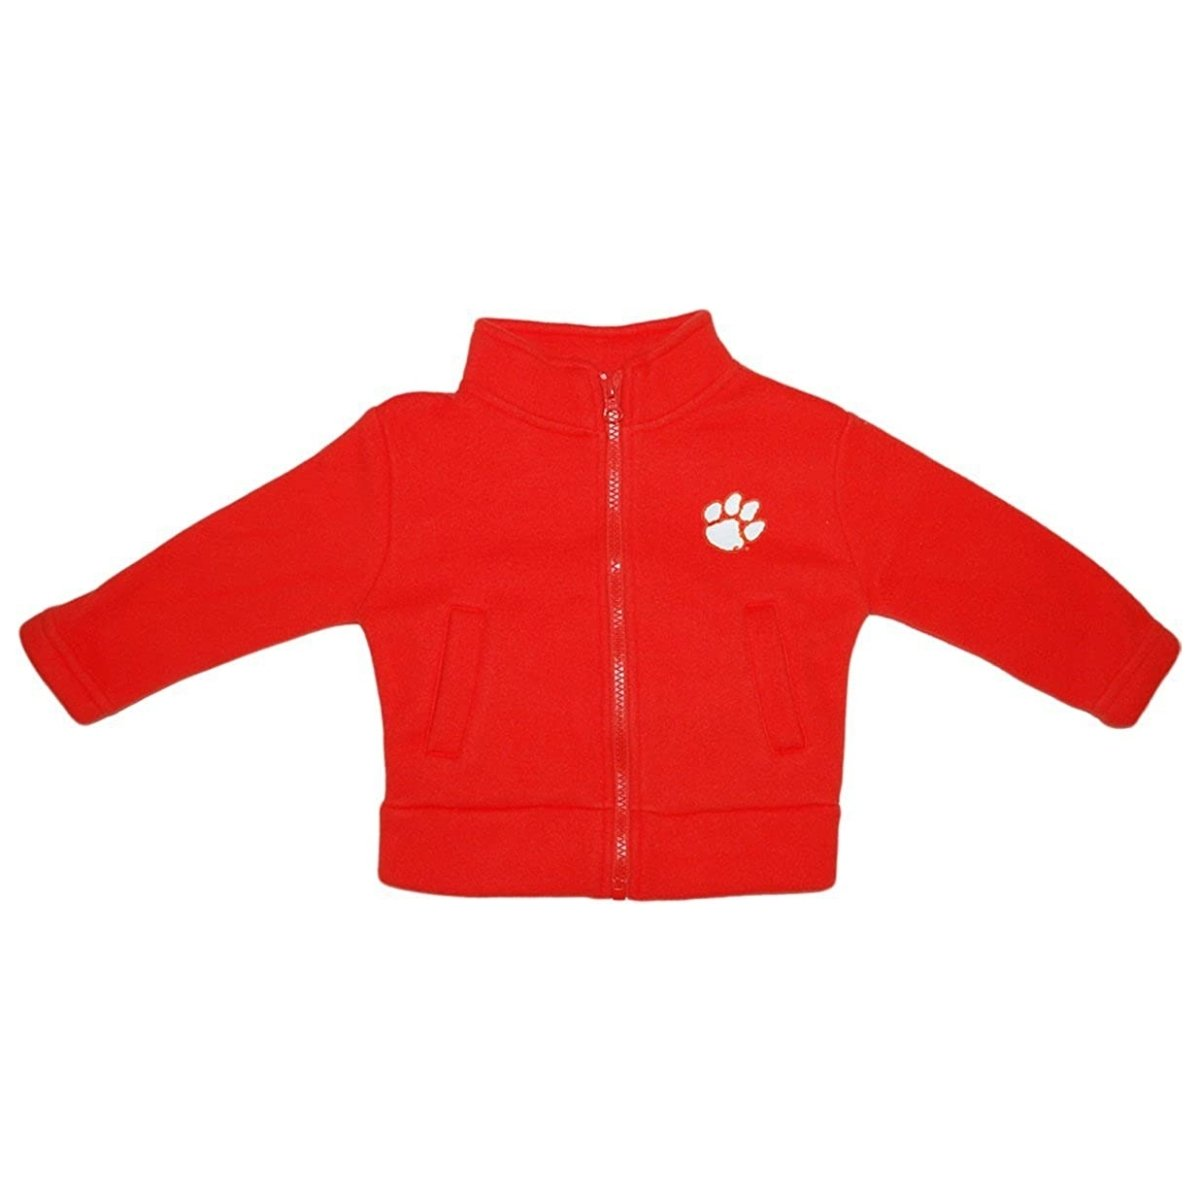 Infant Polar Fleece Jacket - Mr. Knickerbocker